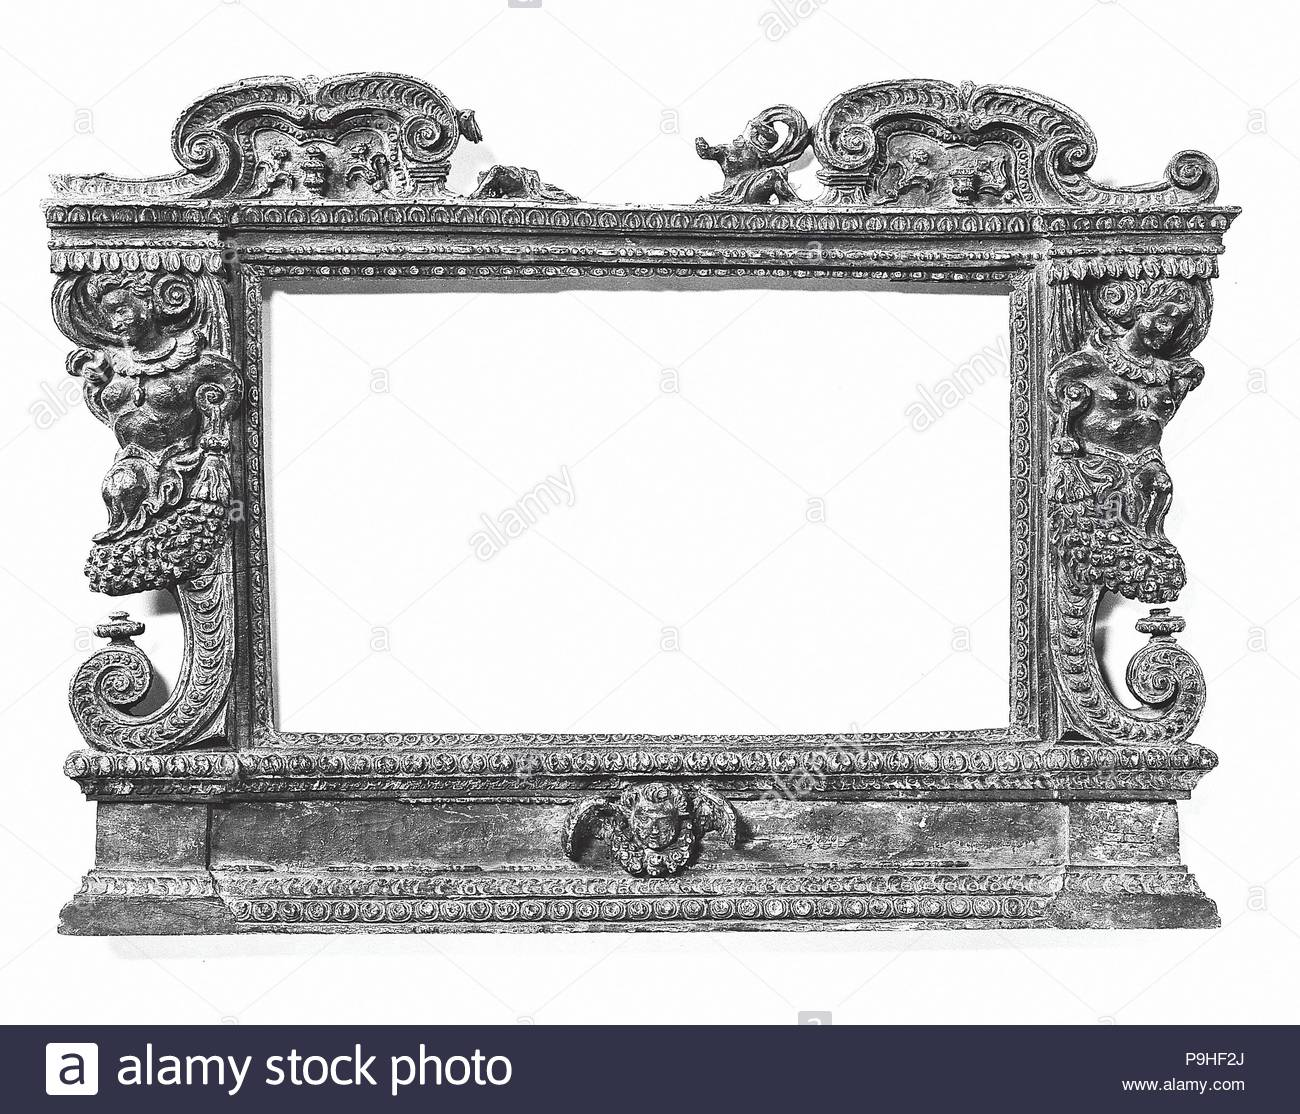 Tabernacle frame, style 16th century, made ca. 1920, Italian, Tuscan ...